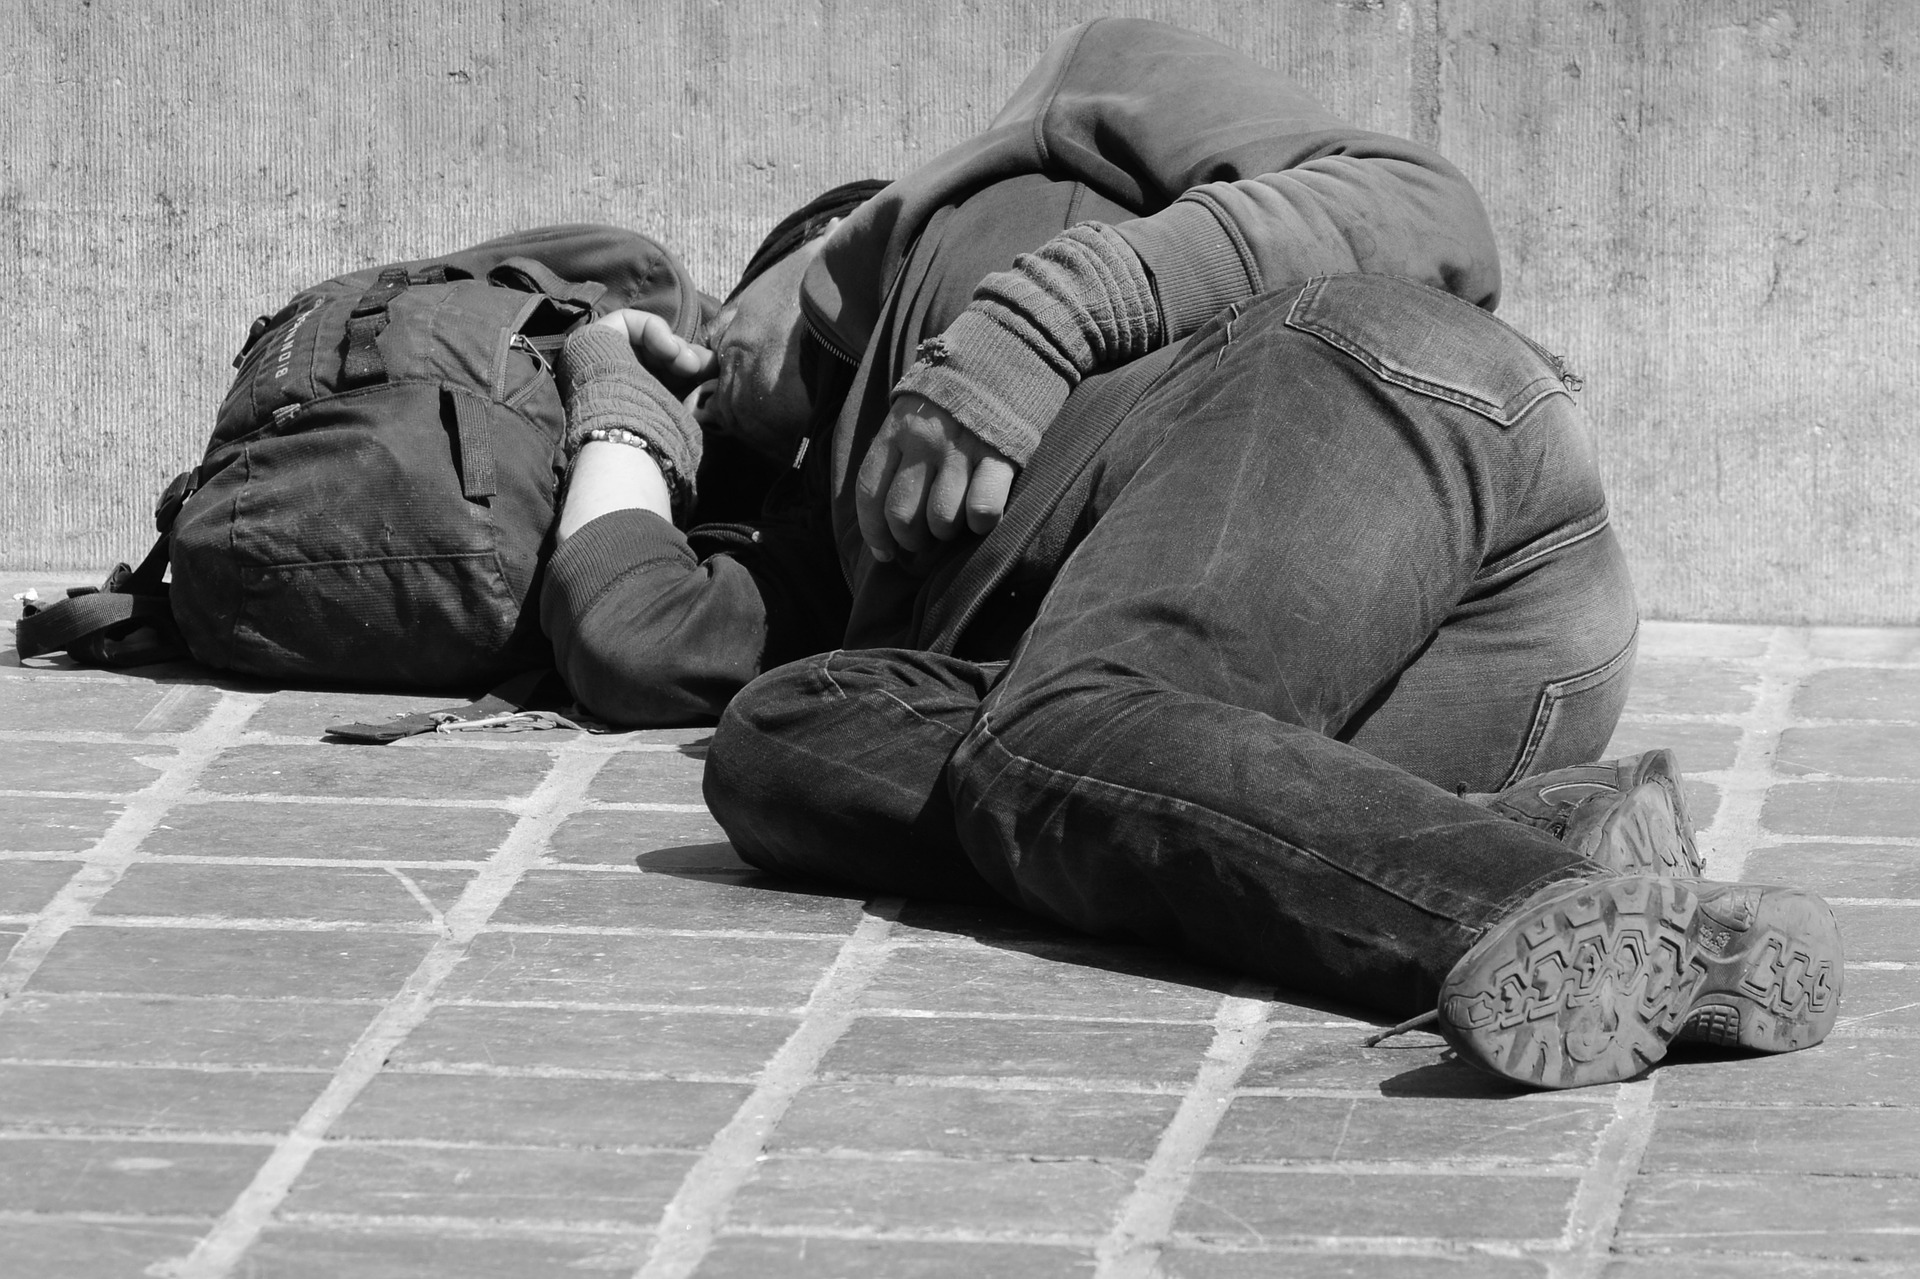 Opinion: Criminalizing Homelessness is a National Epidemic